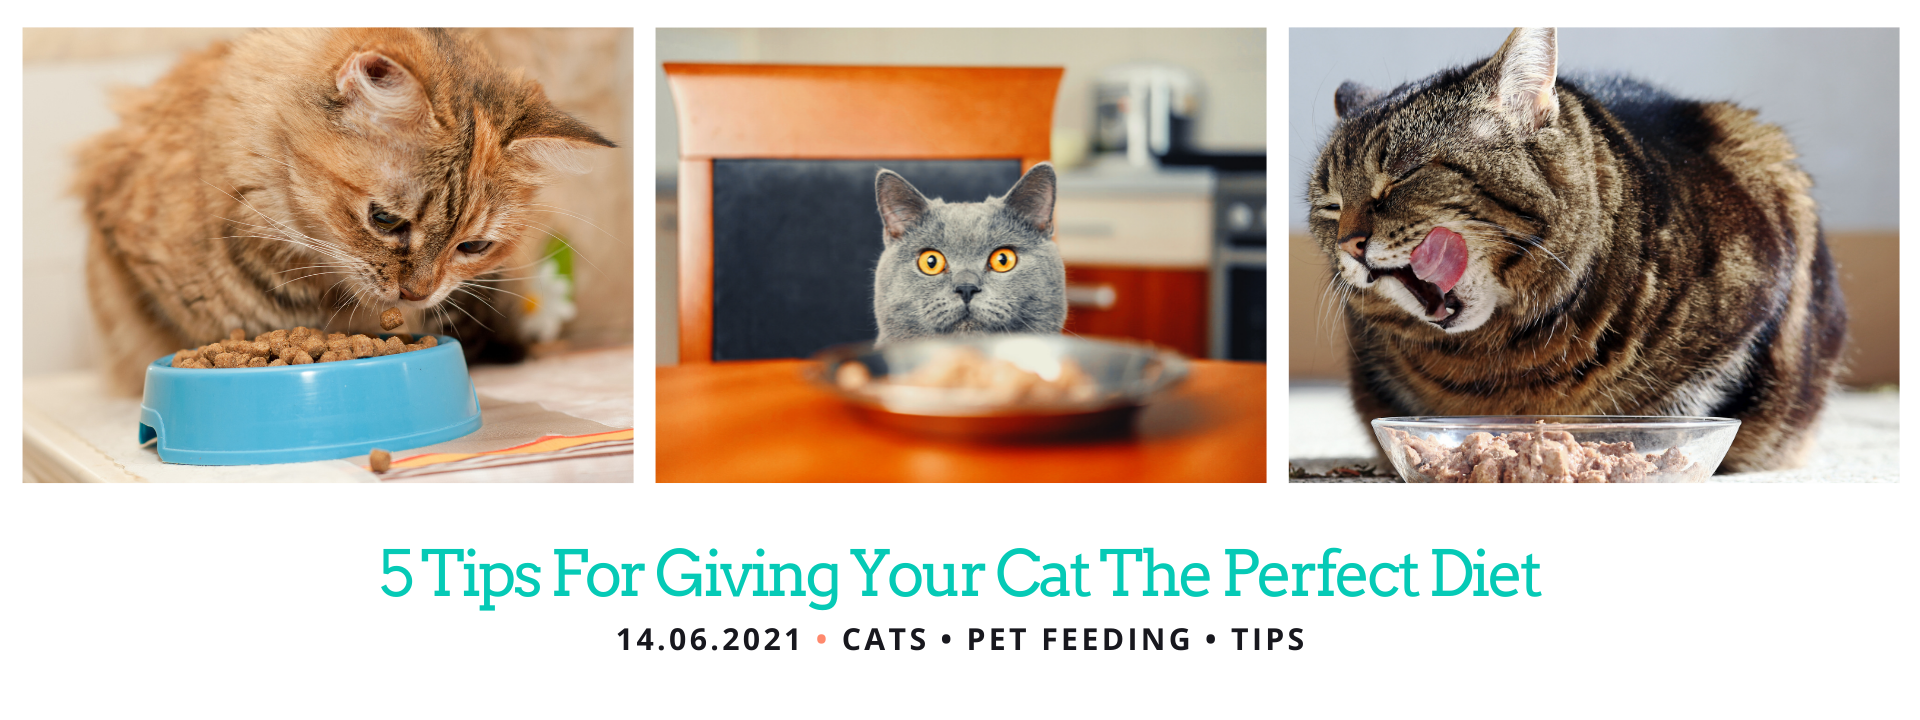 Diet Tips for Cats